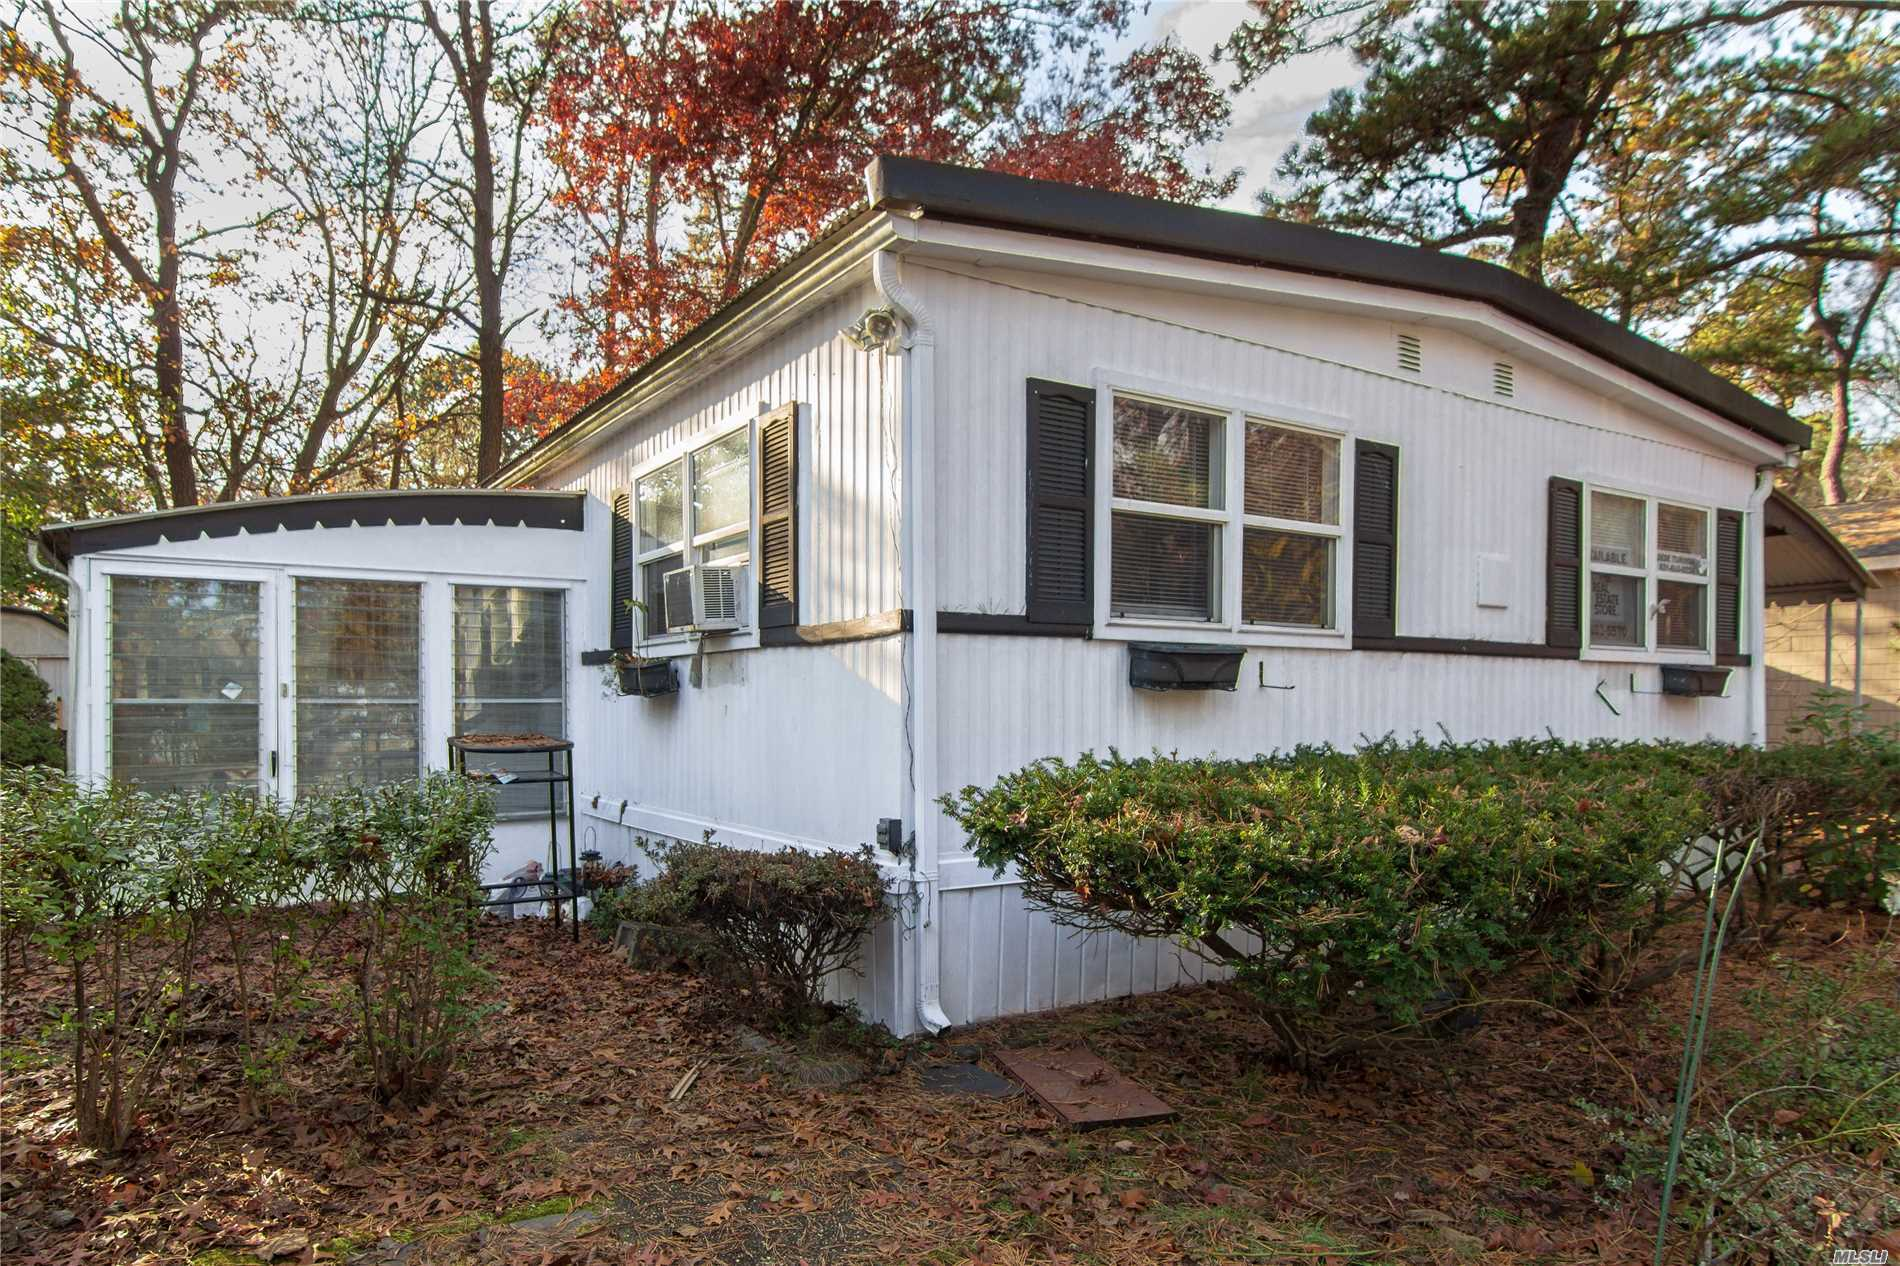 1971 Double Wide, 55 And Older Community. Cash Only. Kitchen, Living, Dining Rooms. Two Bedrooms And A Full Bath. Sun Room. New Windows.A/C Units In Bedrooms.Semi Furnished.Land Rent Is $789. Per Month .Use Of Club House. Southampton Beach Rights. No Dogs Over 45 Lbs.